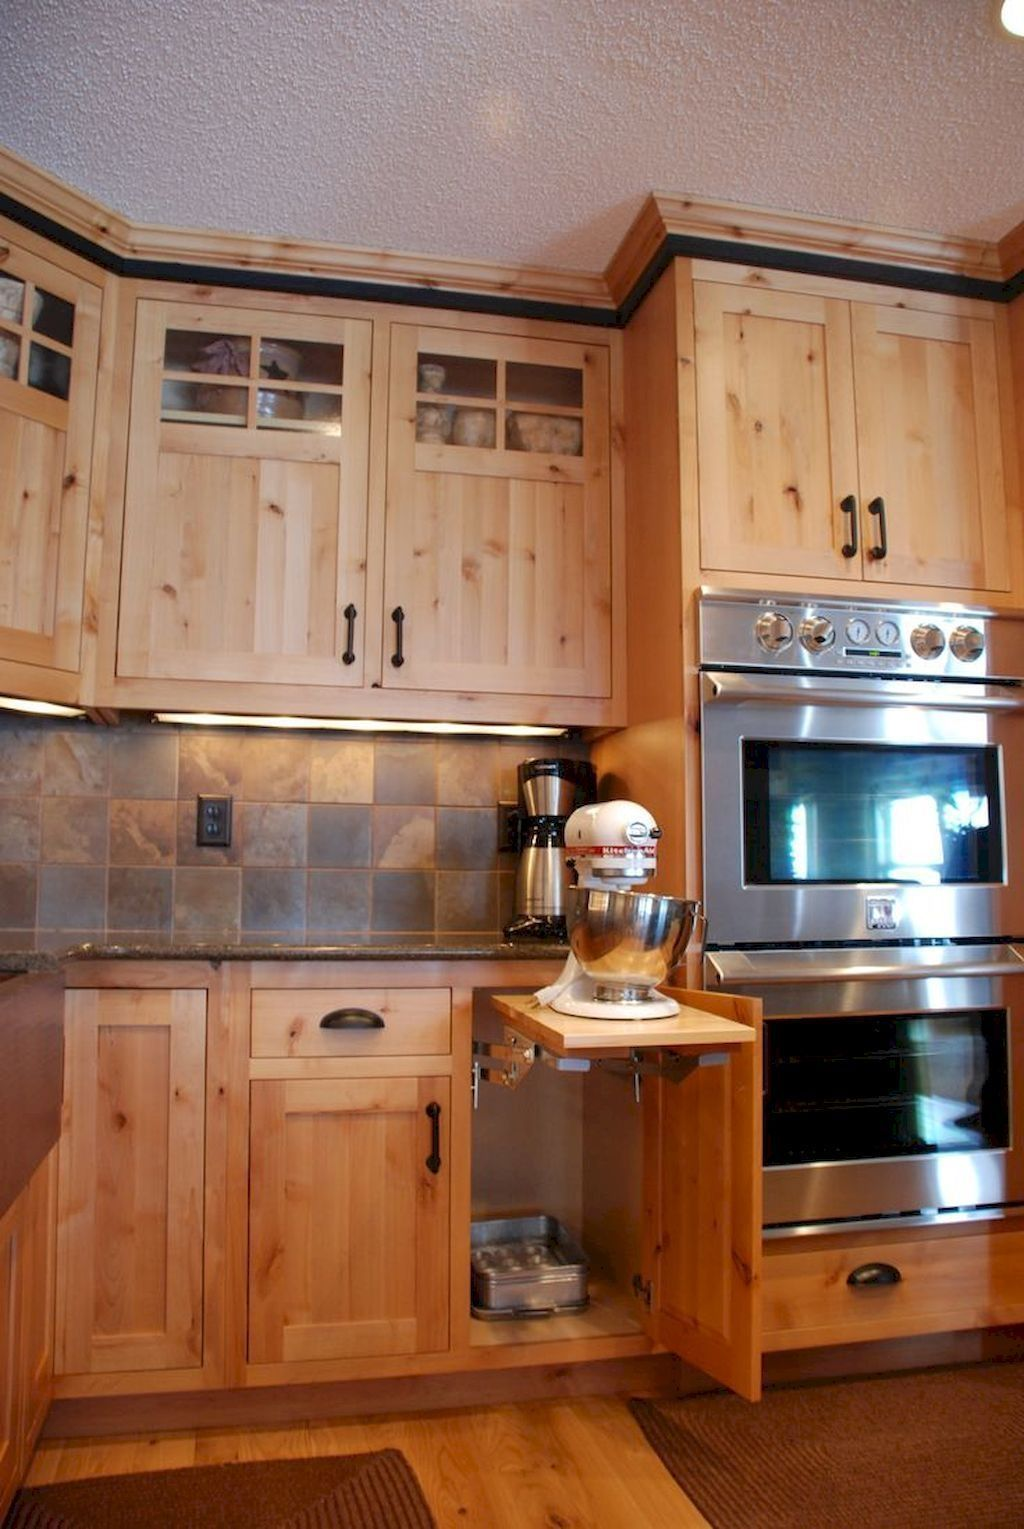 Pine Kitchen Cabinets Hickory Kitchen Cabinets Kitchen Cabinet Desig In 2020 Hickory Kitchen Cabinets Farmhouse Style Kitchen Cabinets Farmhouse Kitchen Cabinets